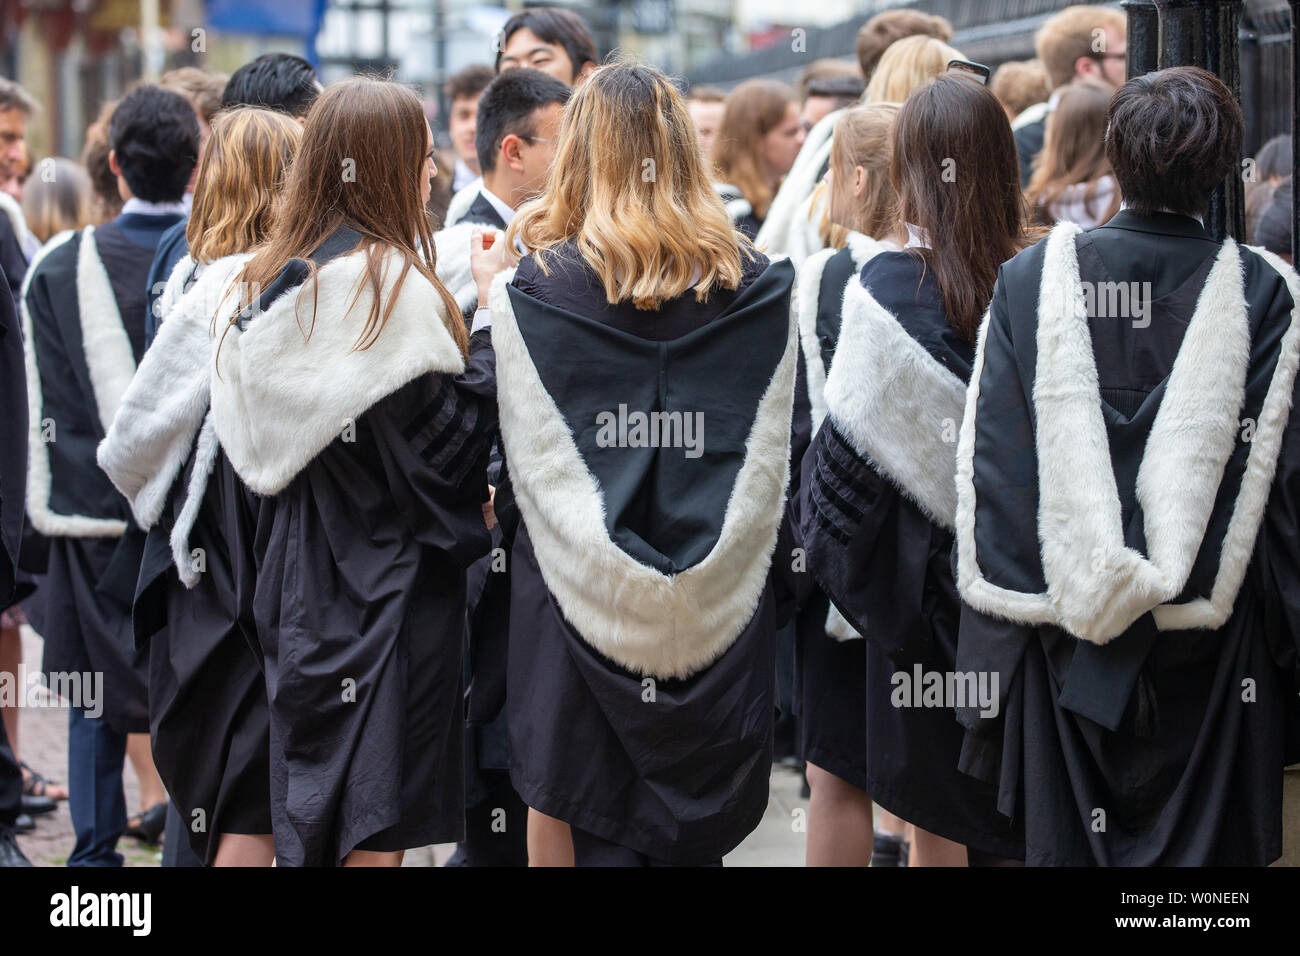 Cambridge University students from St John's College on the first day of this years graduation ceremonies at the Senate House.  Students dressed in black gowns as the traditional Cambridge University graduation ceremonies took place today (Wed).  The students paraded into historic Senate House watched by family and friends to collect their degrees from the prestigious university.  Many parts of the degree ceremonies, which will also be held over the next few days, have their origin amongst the earliest customs of the university 800 years ago.  Undergraduates are required to wear the gown of th - Stock Image